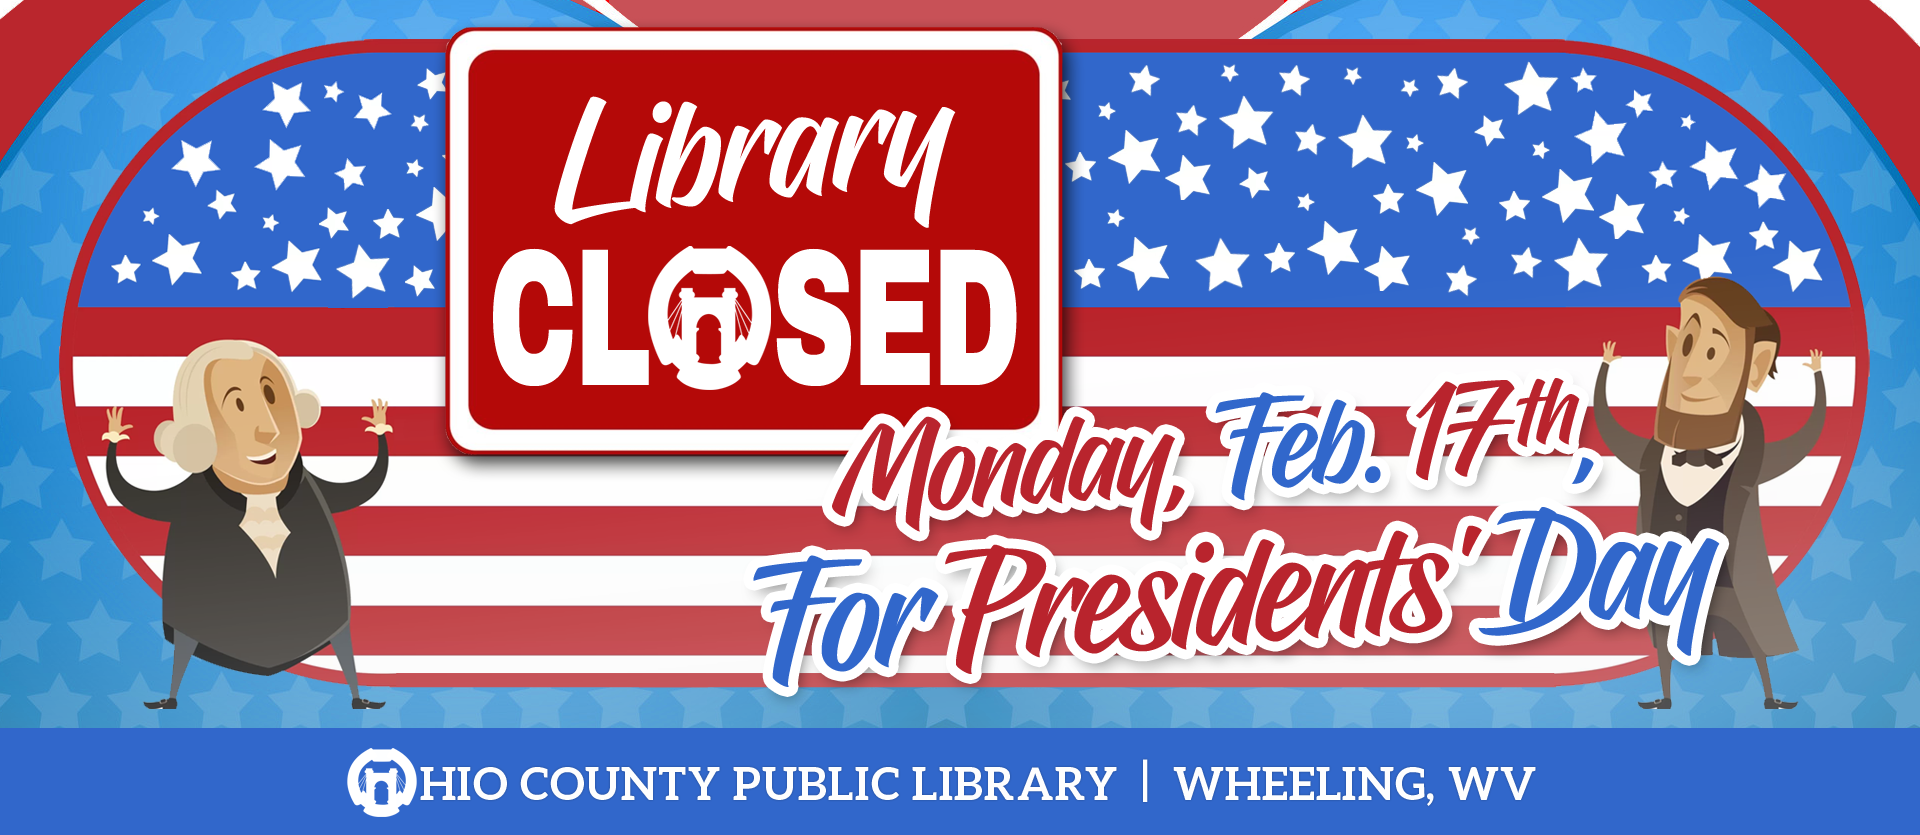 The Library will be closed Monday, Feb. 17, 2020, for Presidents' Day.